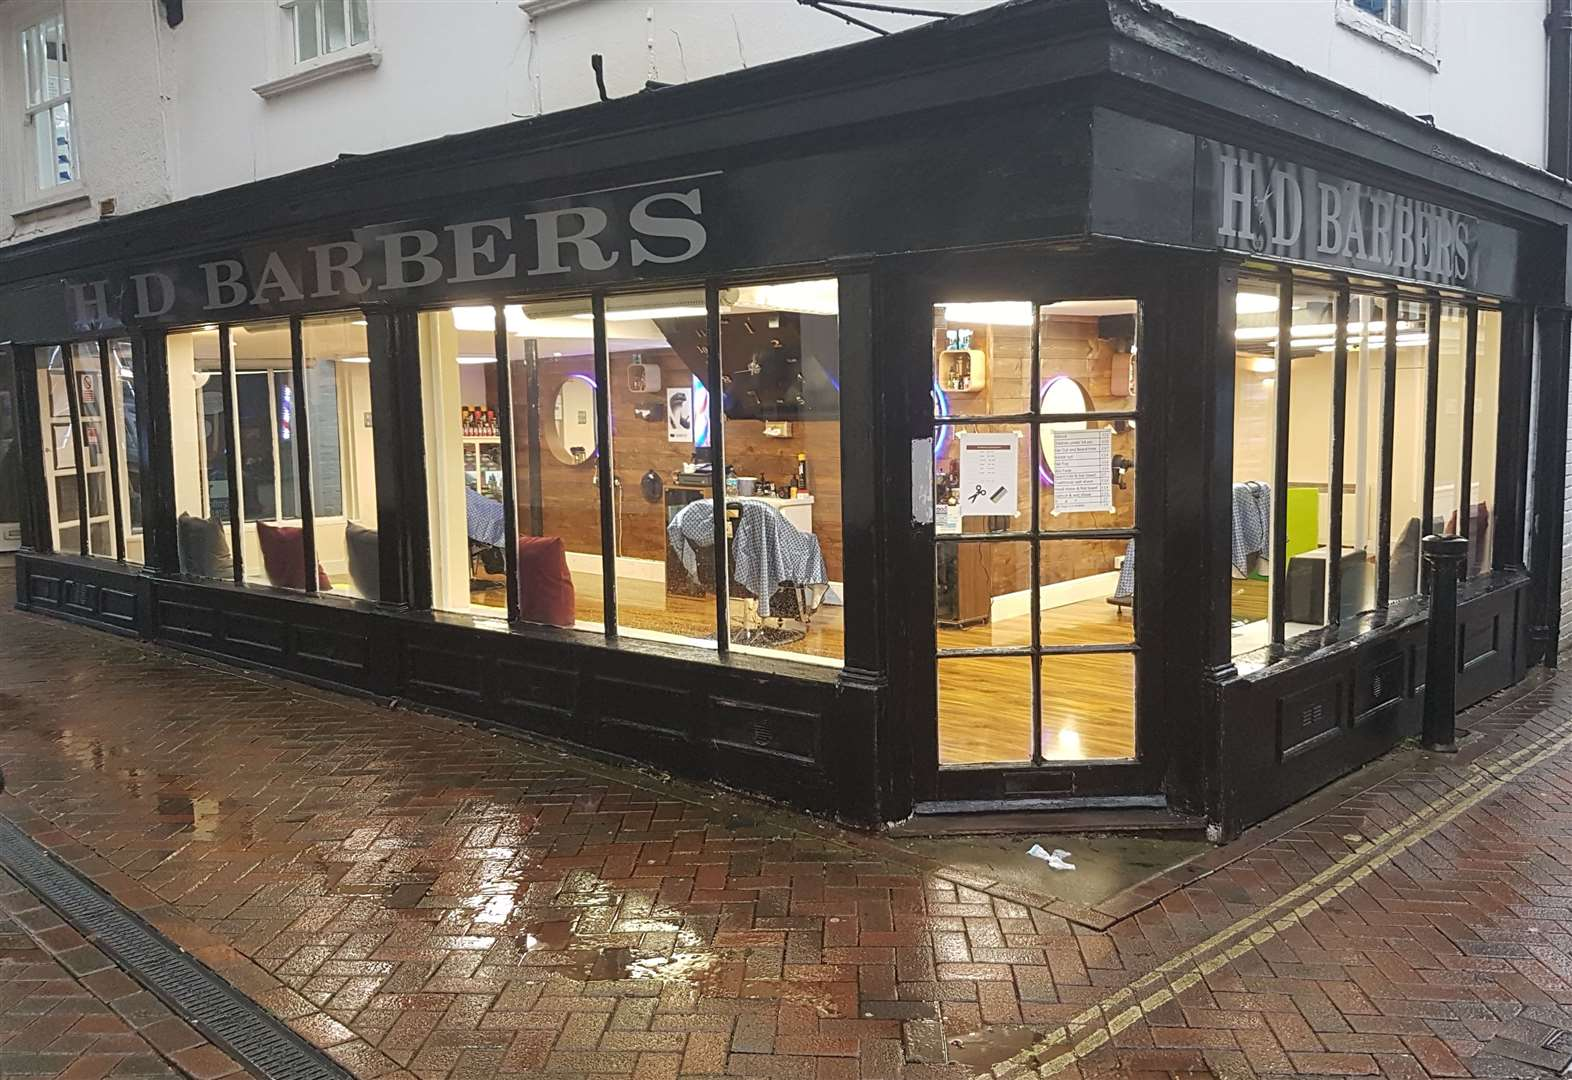 The attack took place outside HD Barbers in Ashford High Street